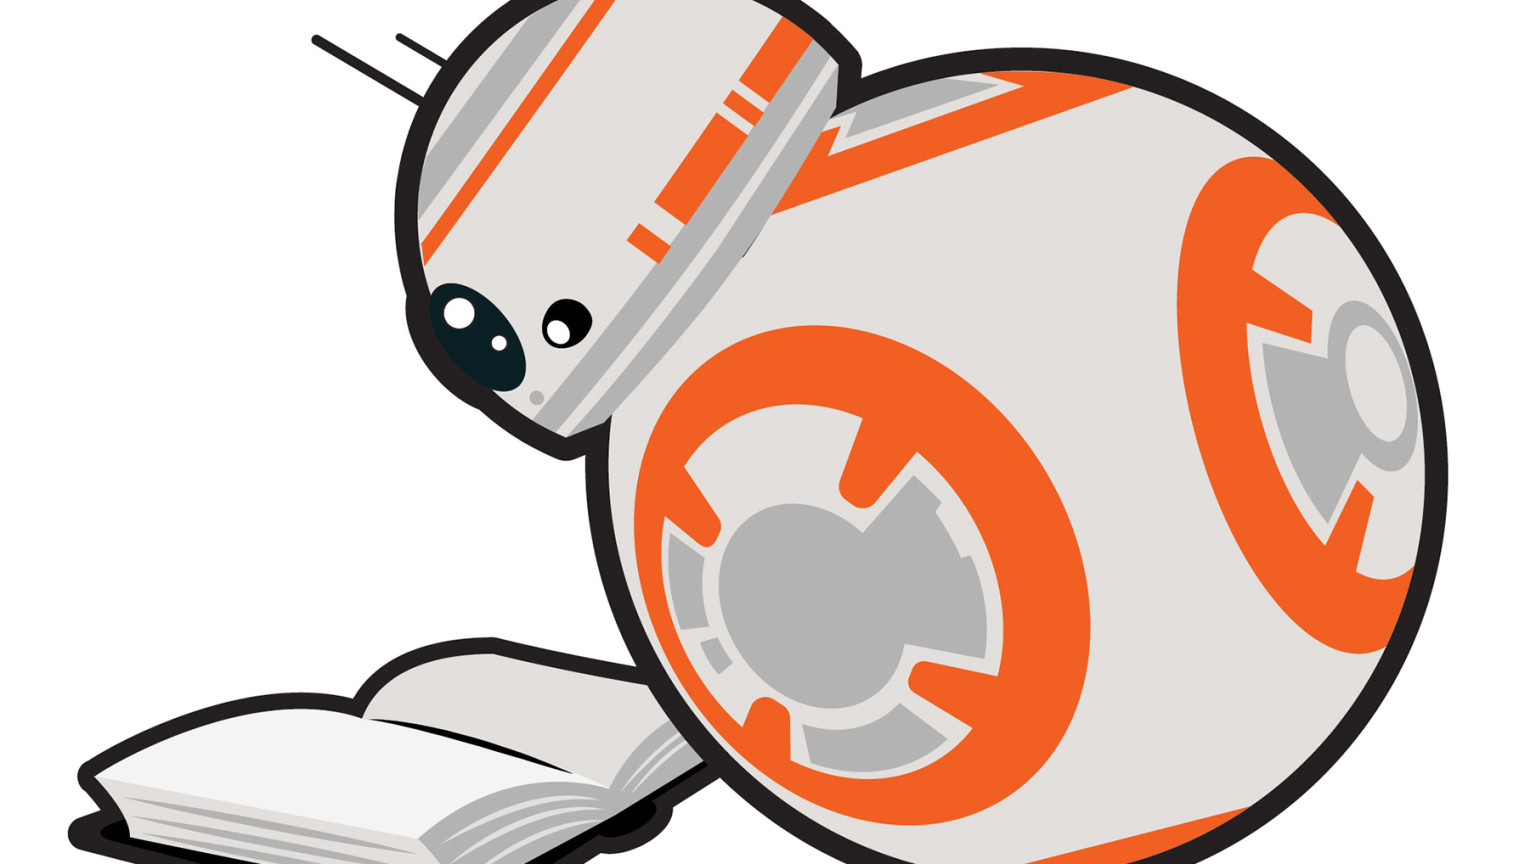 Bb8 clipart jpeg. Star wars reads day